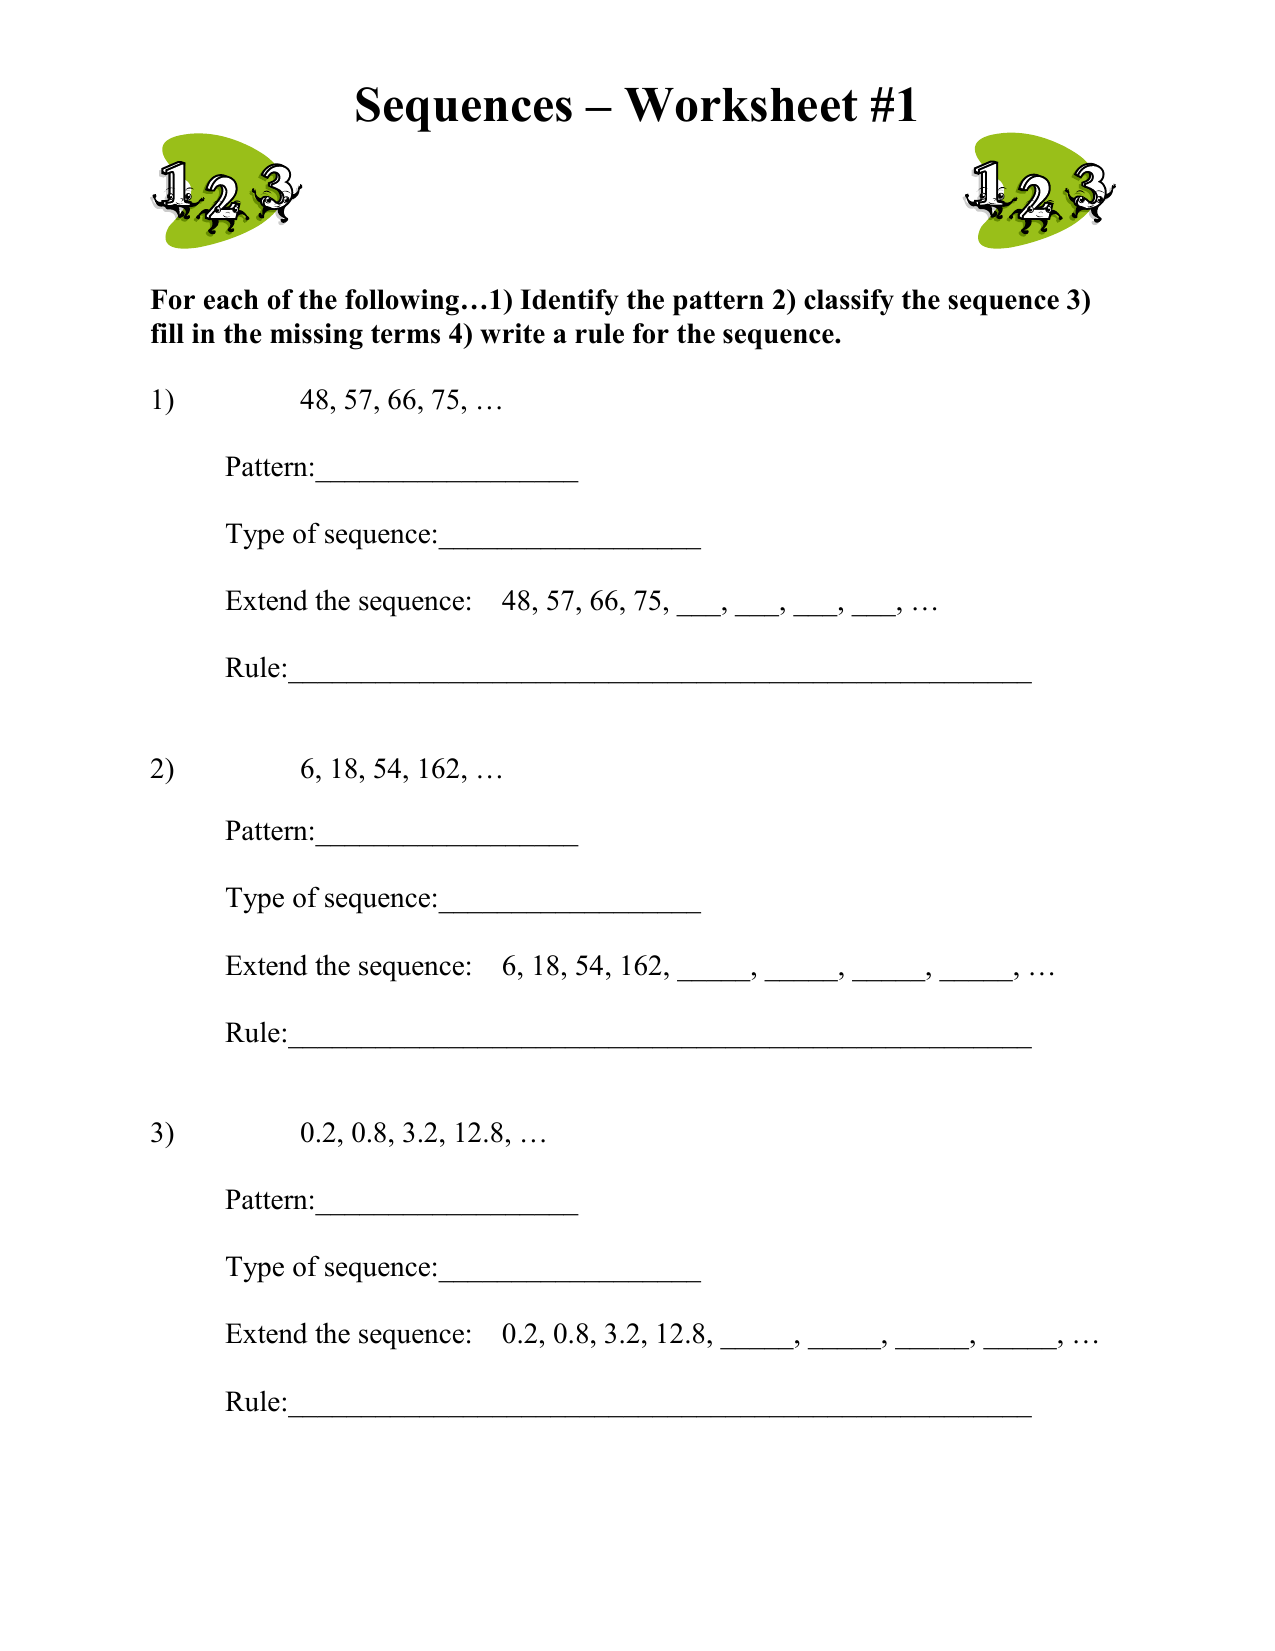 Sequences Worksheet 1 For Each Of The Following 1